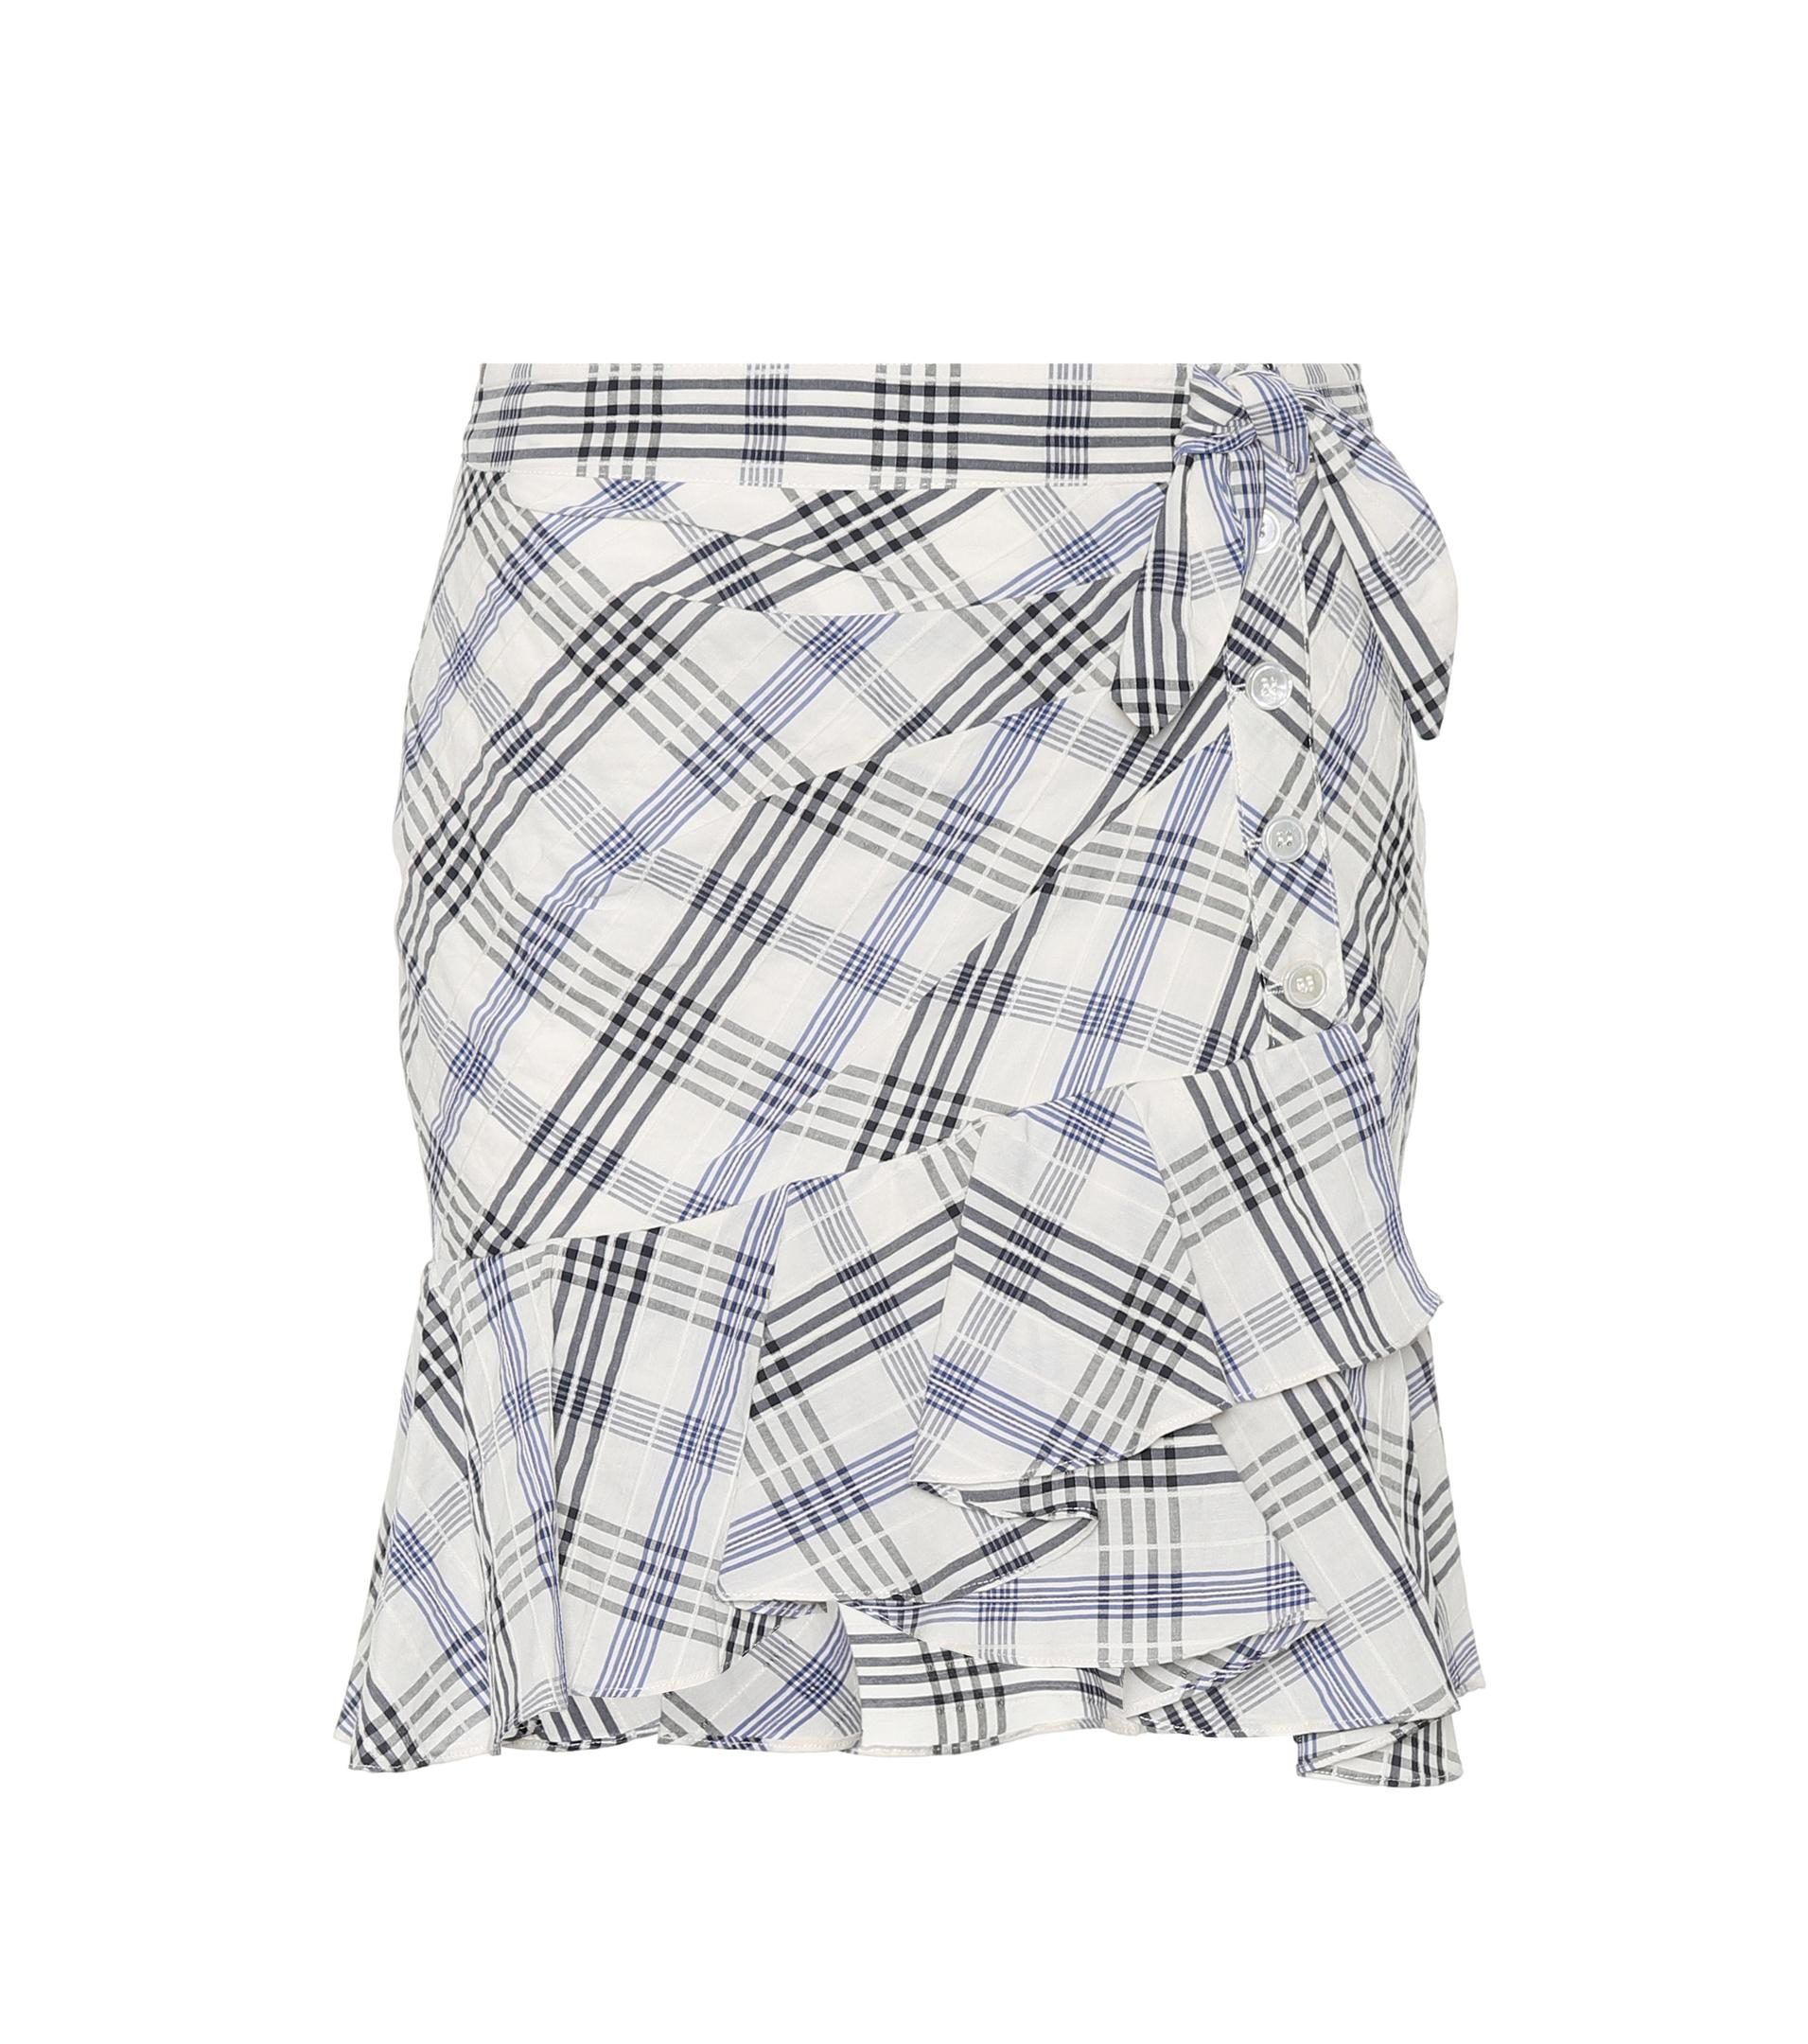 Cheap Prices Kaia Embroidered Checked Cotton-blend Mini Skirt - Blue Veronica Beard Shop For 2018 New Sale Online Recommend 4hJXEbc8A